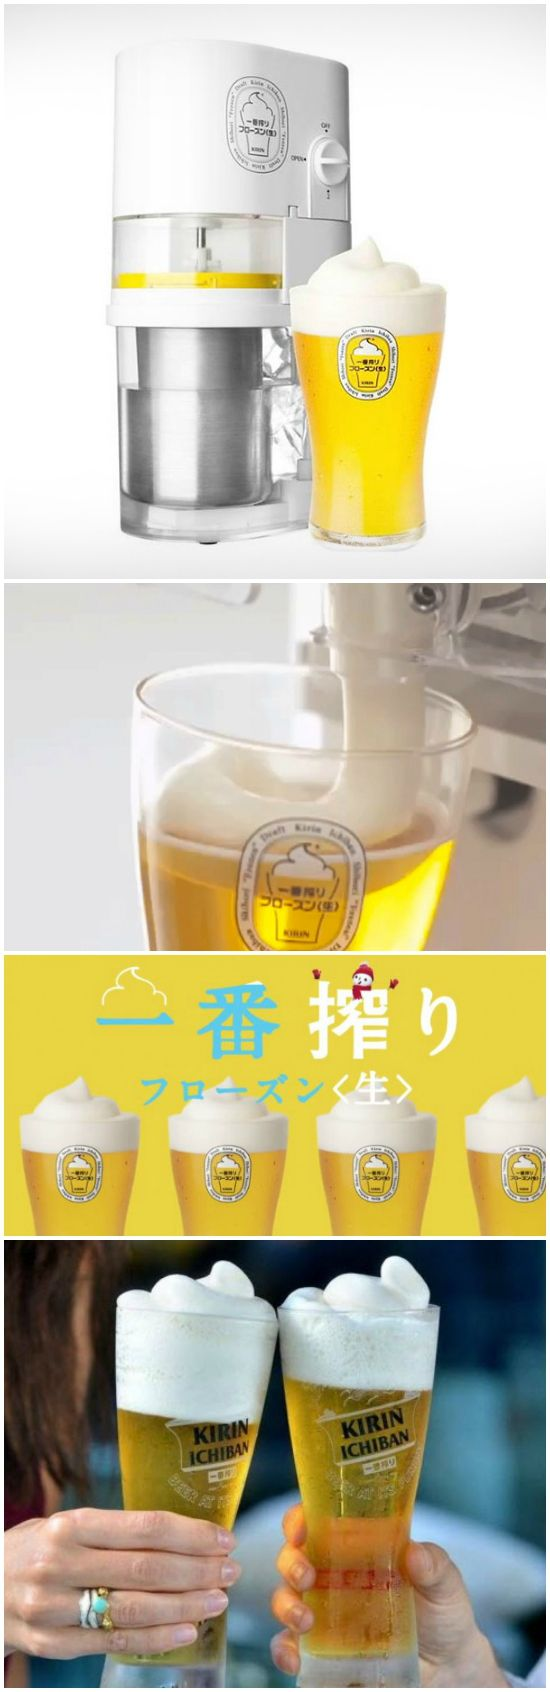 The Kirin Frozen Beer Slushie Maker makes frozen beer. The tiny pieces of ice in the froth will work as a lid that it will keep your beer cold and fizzy.